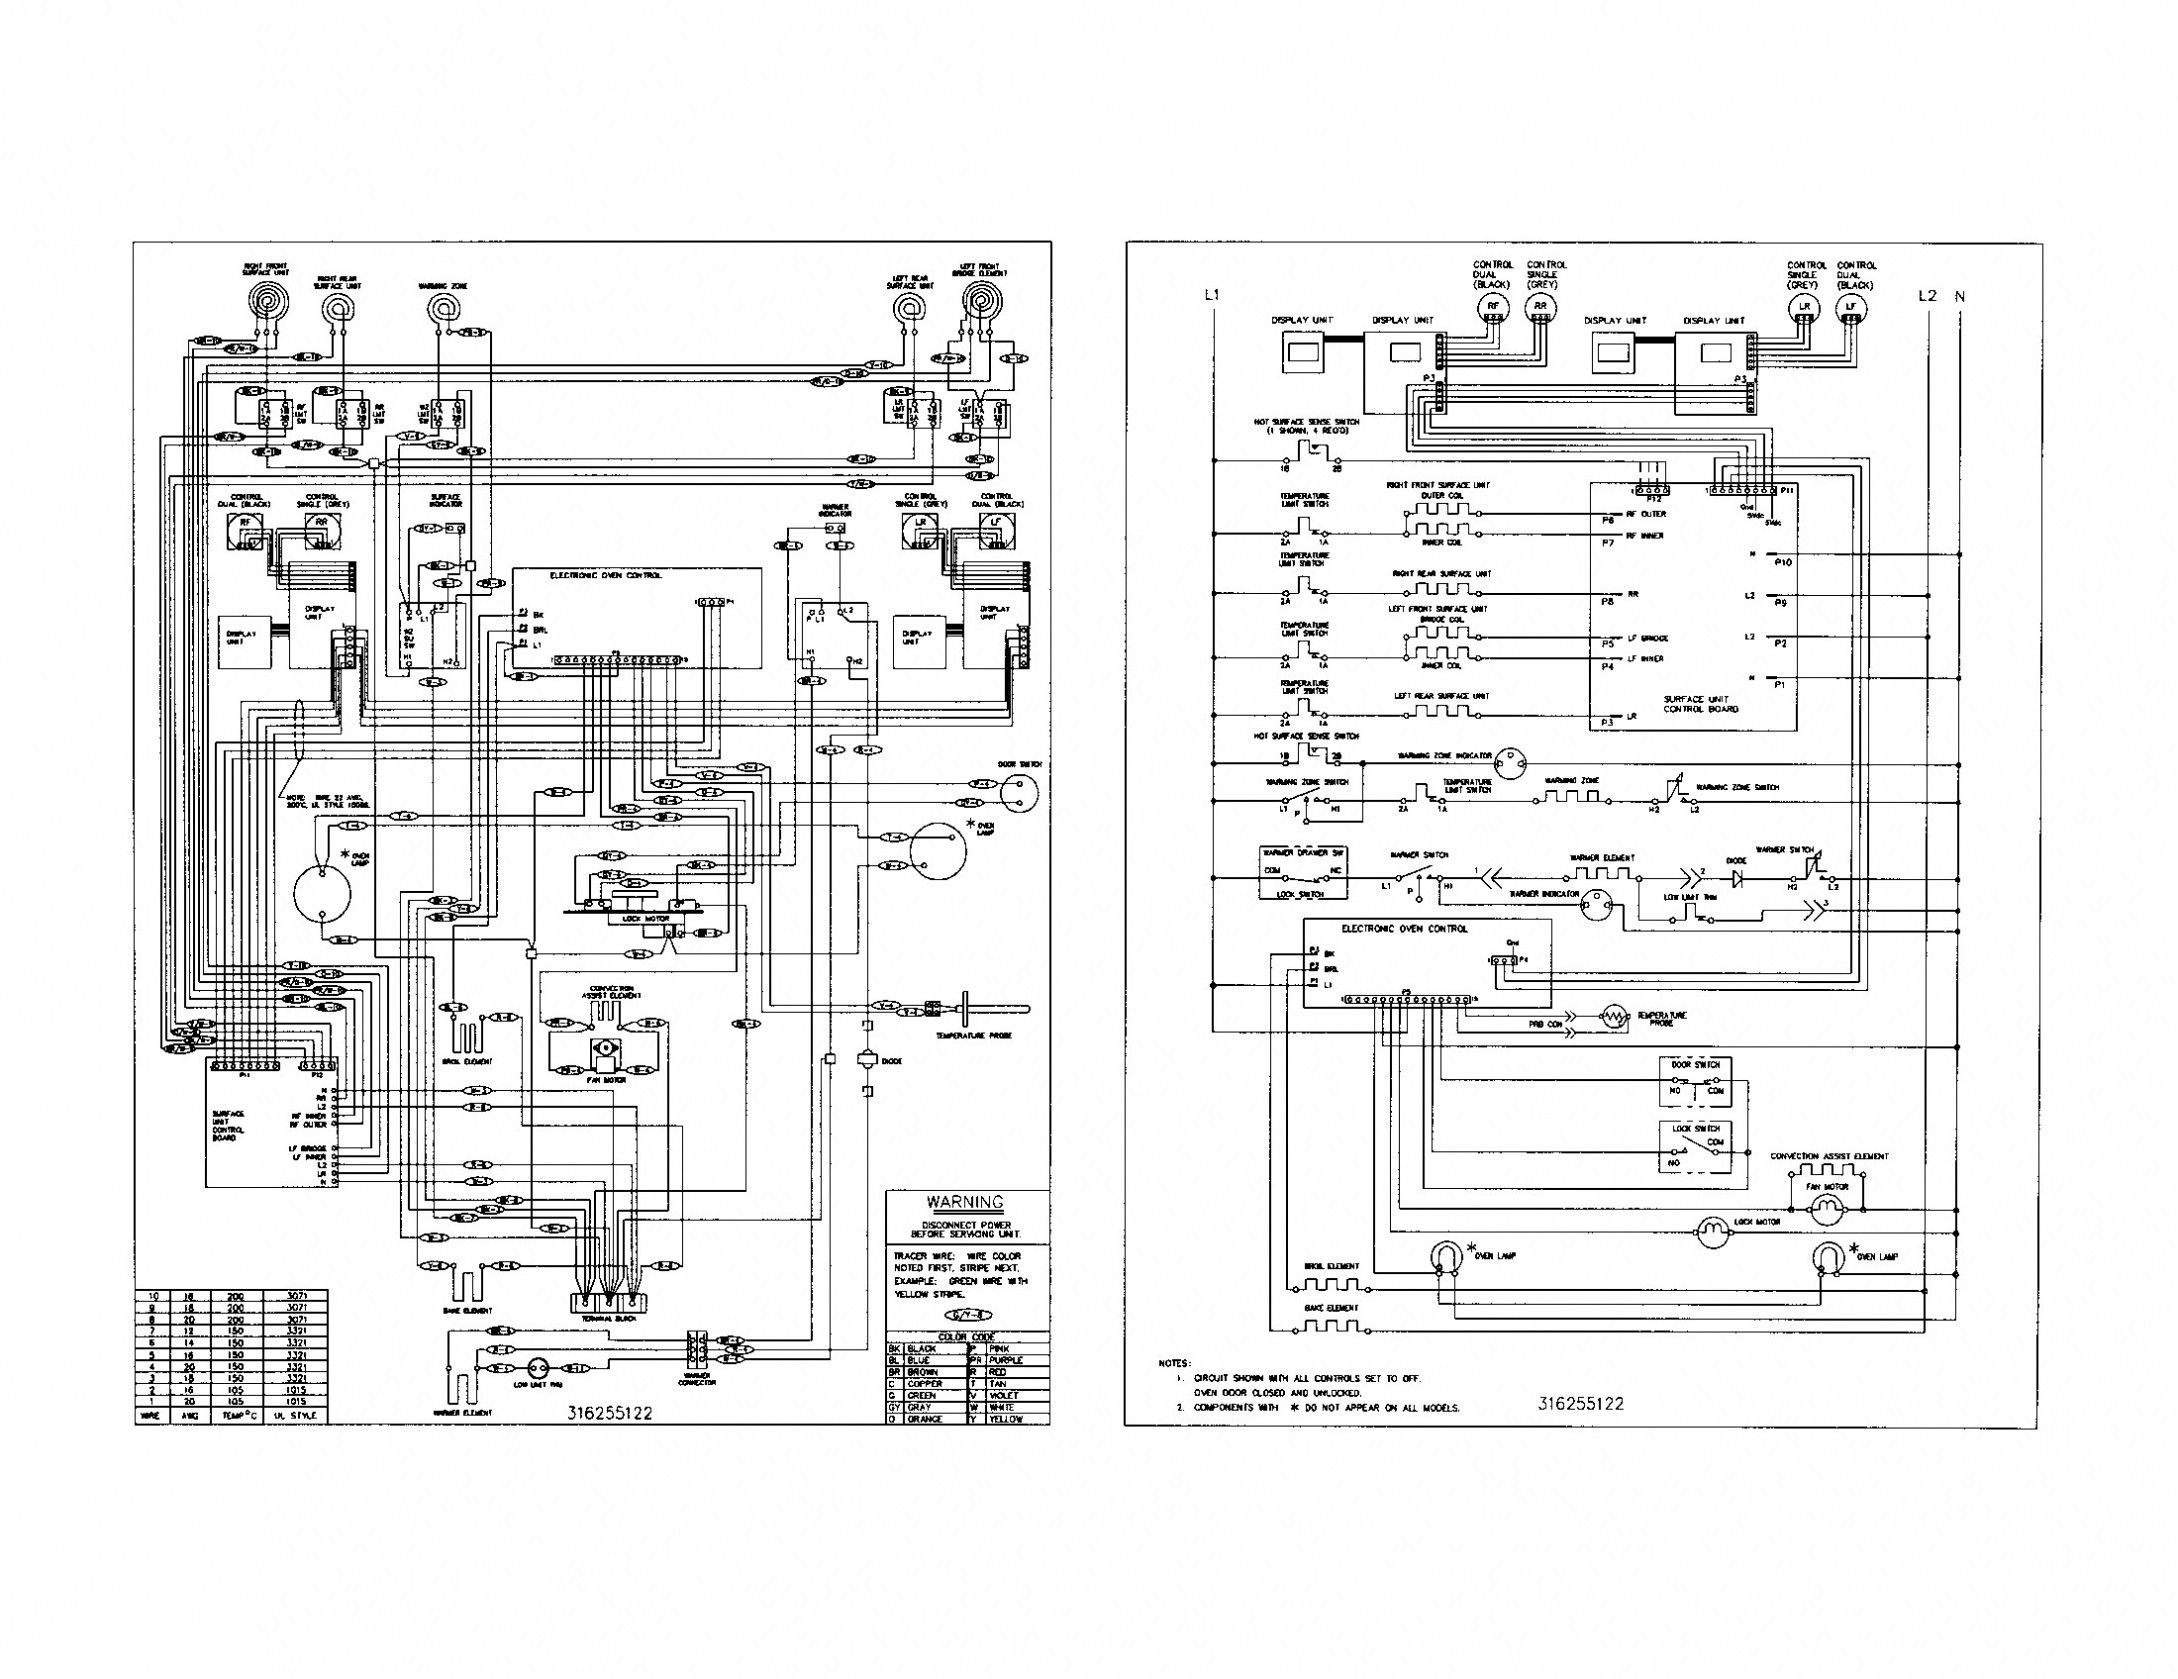 Unique Wiring Diagram for A Gfci Outlet #diagram #